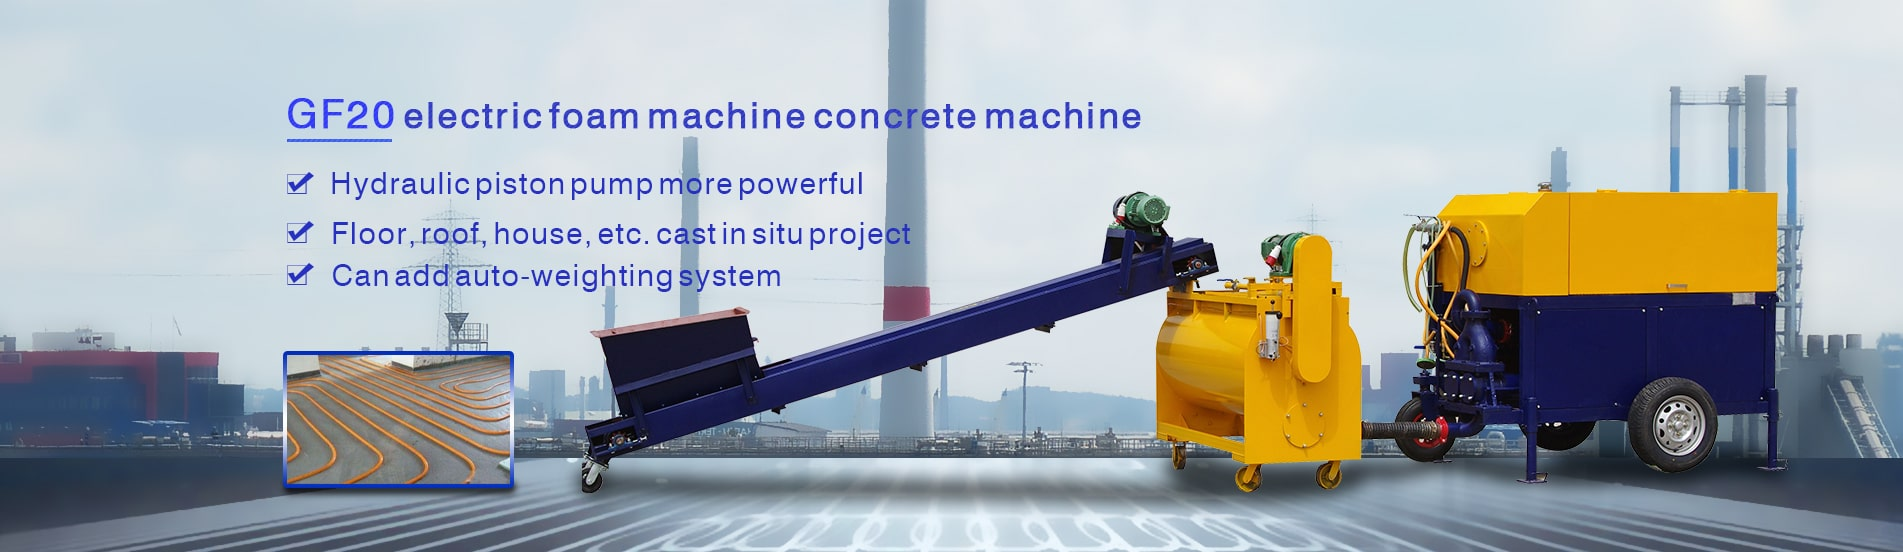 electric foam machine concrete machine